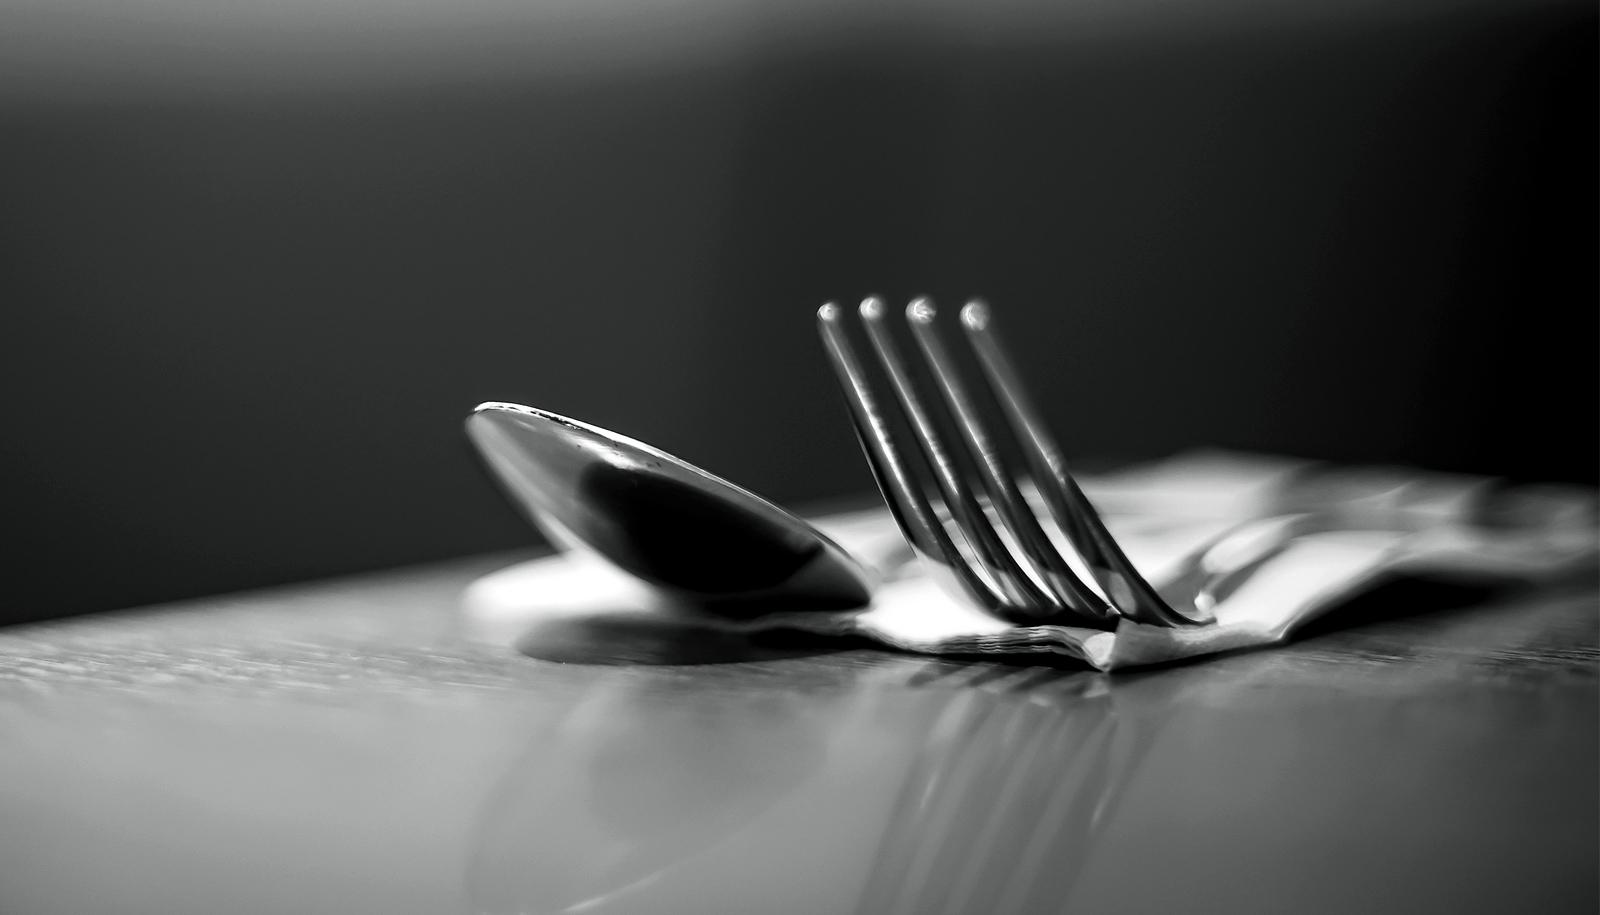 A black and white shot of a fork and spoon on a table